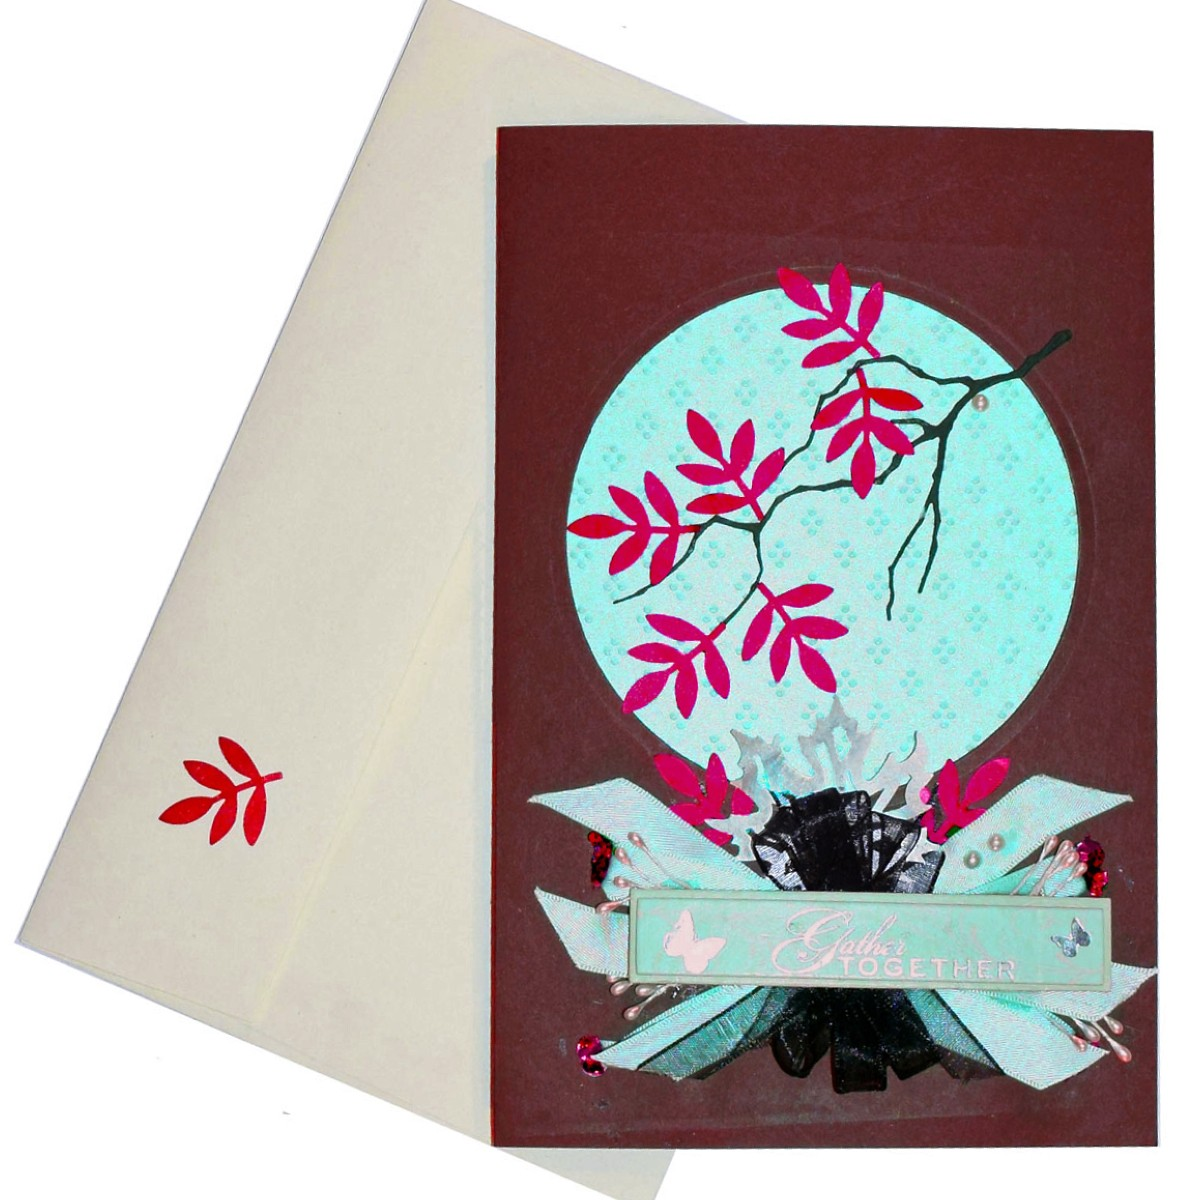 gather together and give thanks diy card - Paper Papers Thanksgiving cherry branch web 3 - Gather together and Give Thanks DIY Card